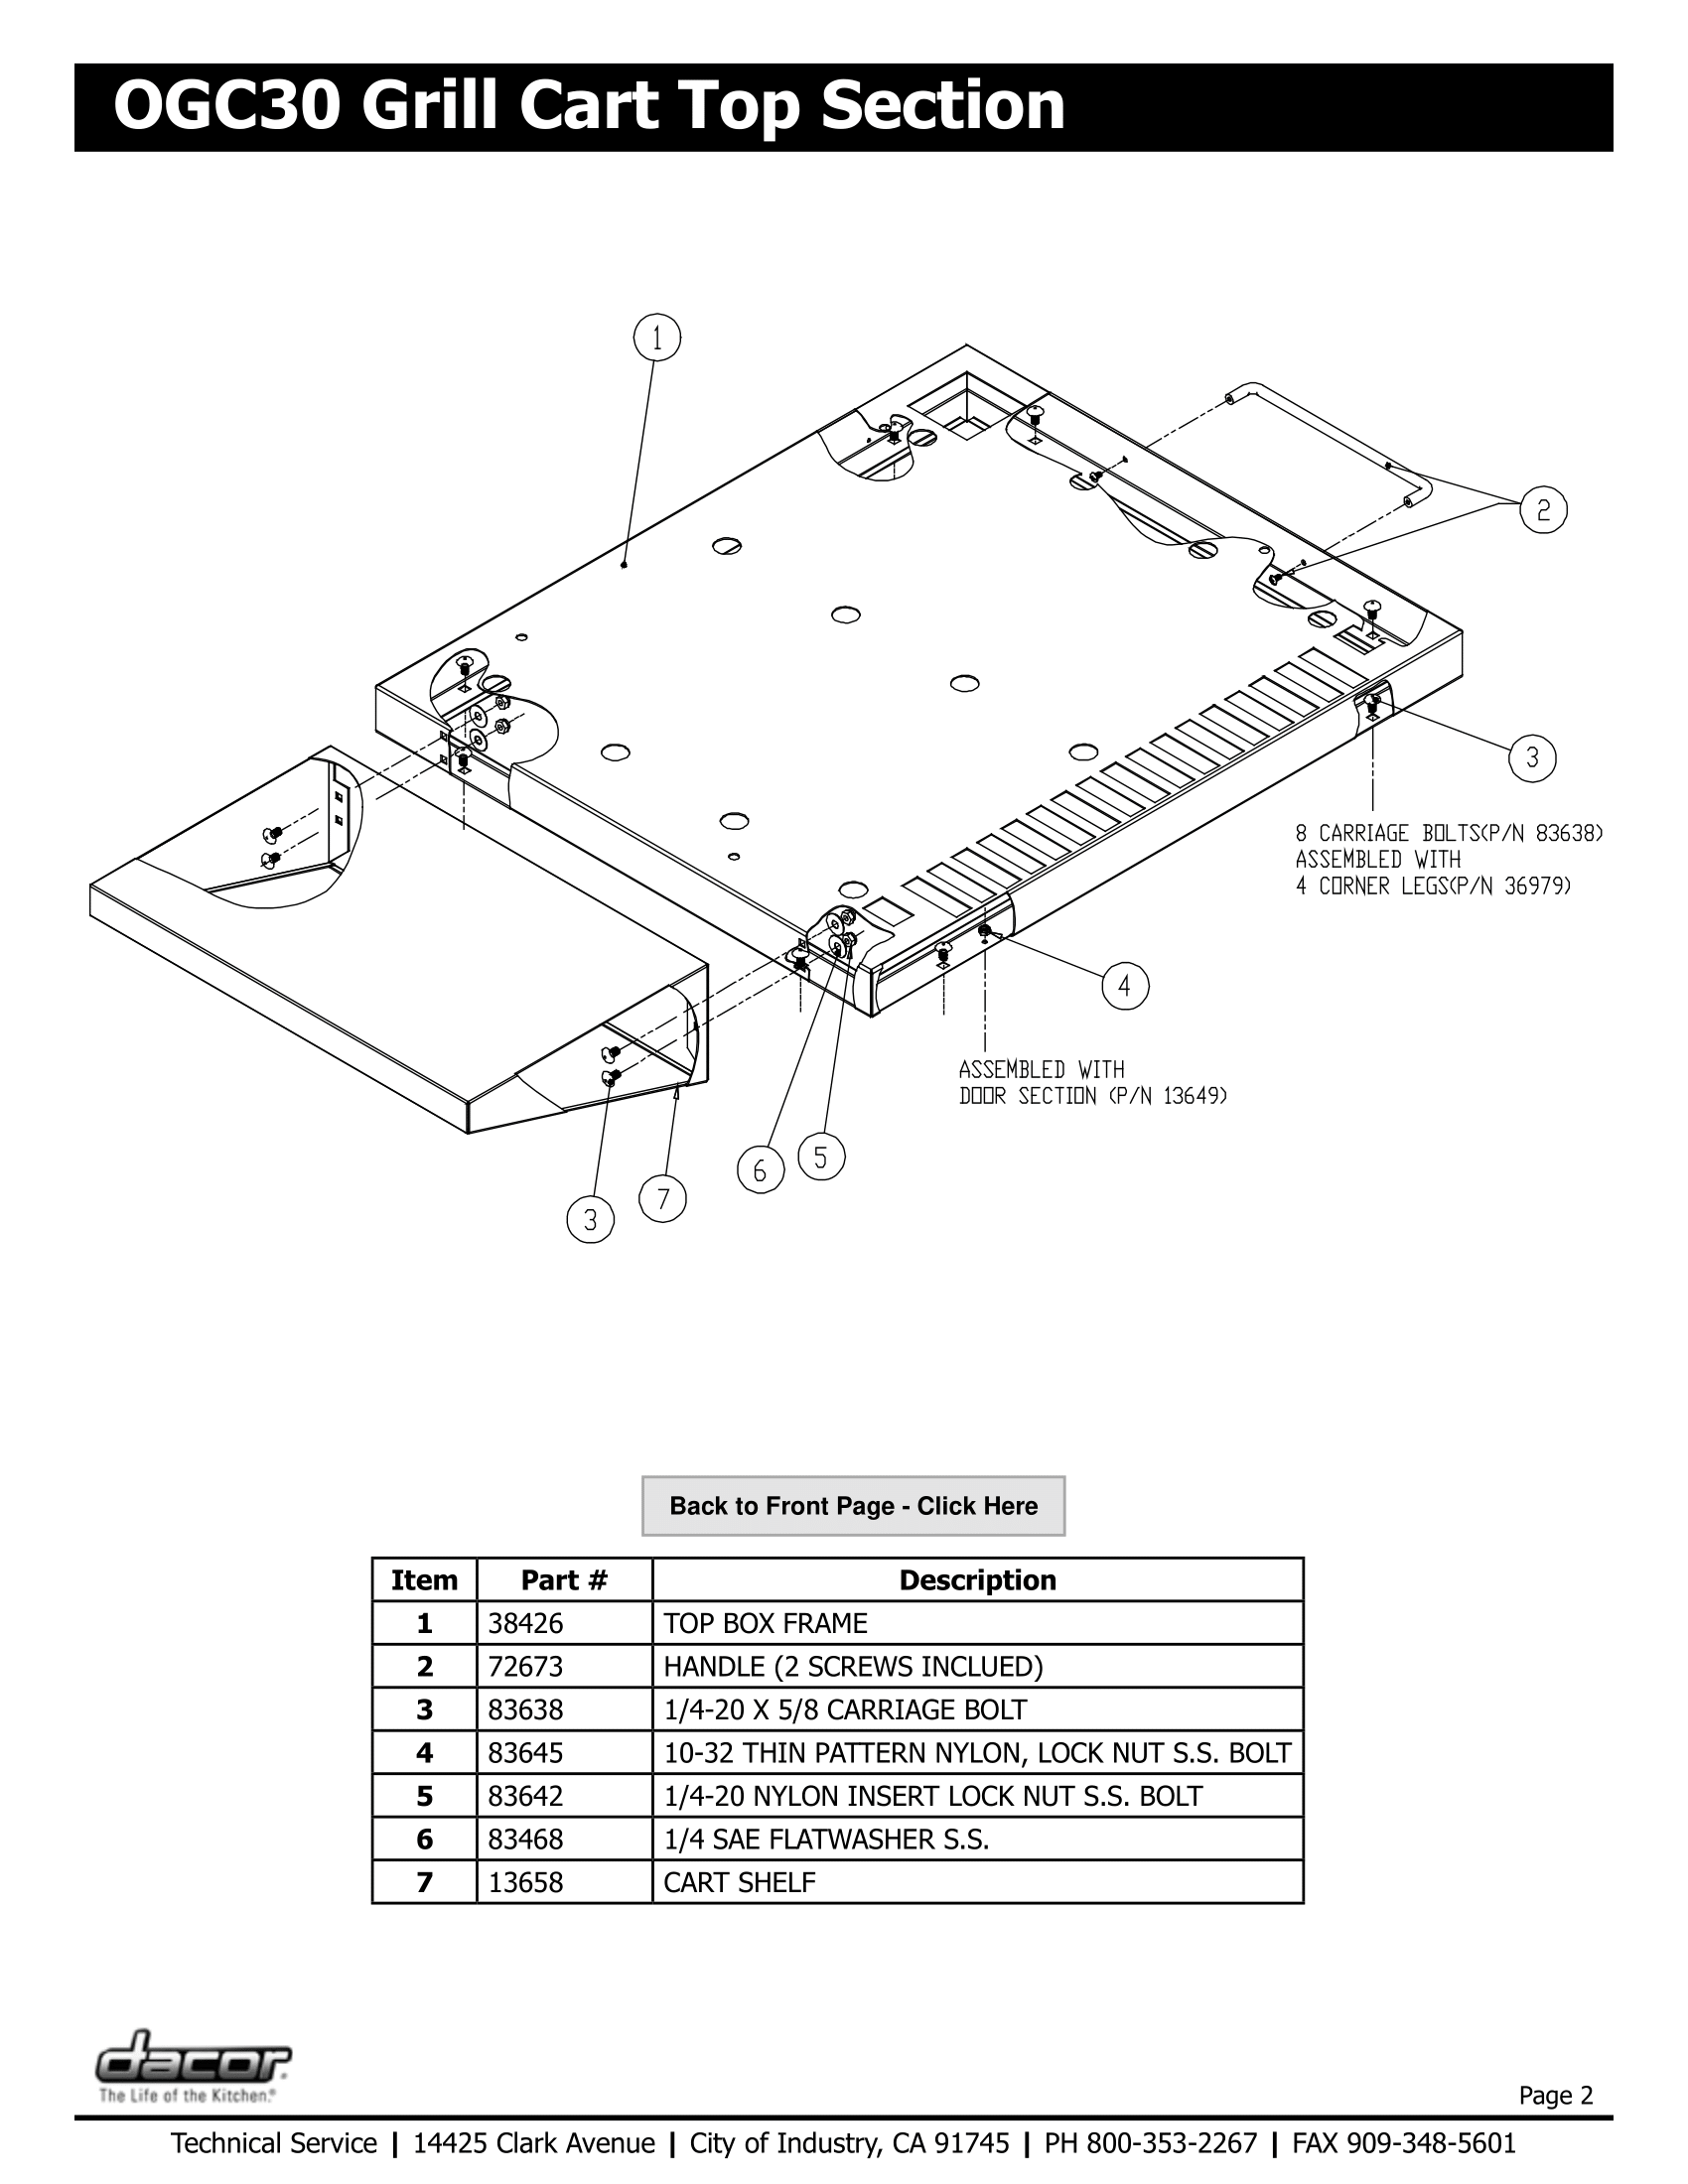 Dacor OGC30 Top Section Schematic